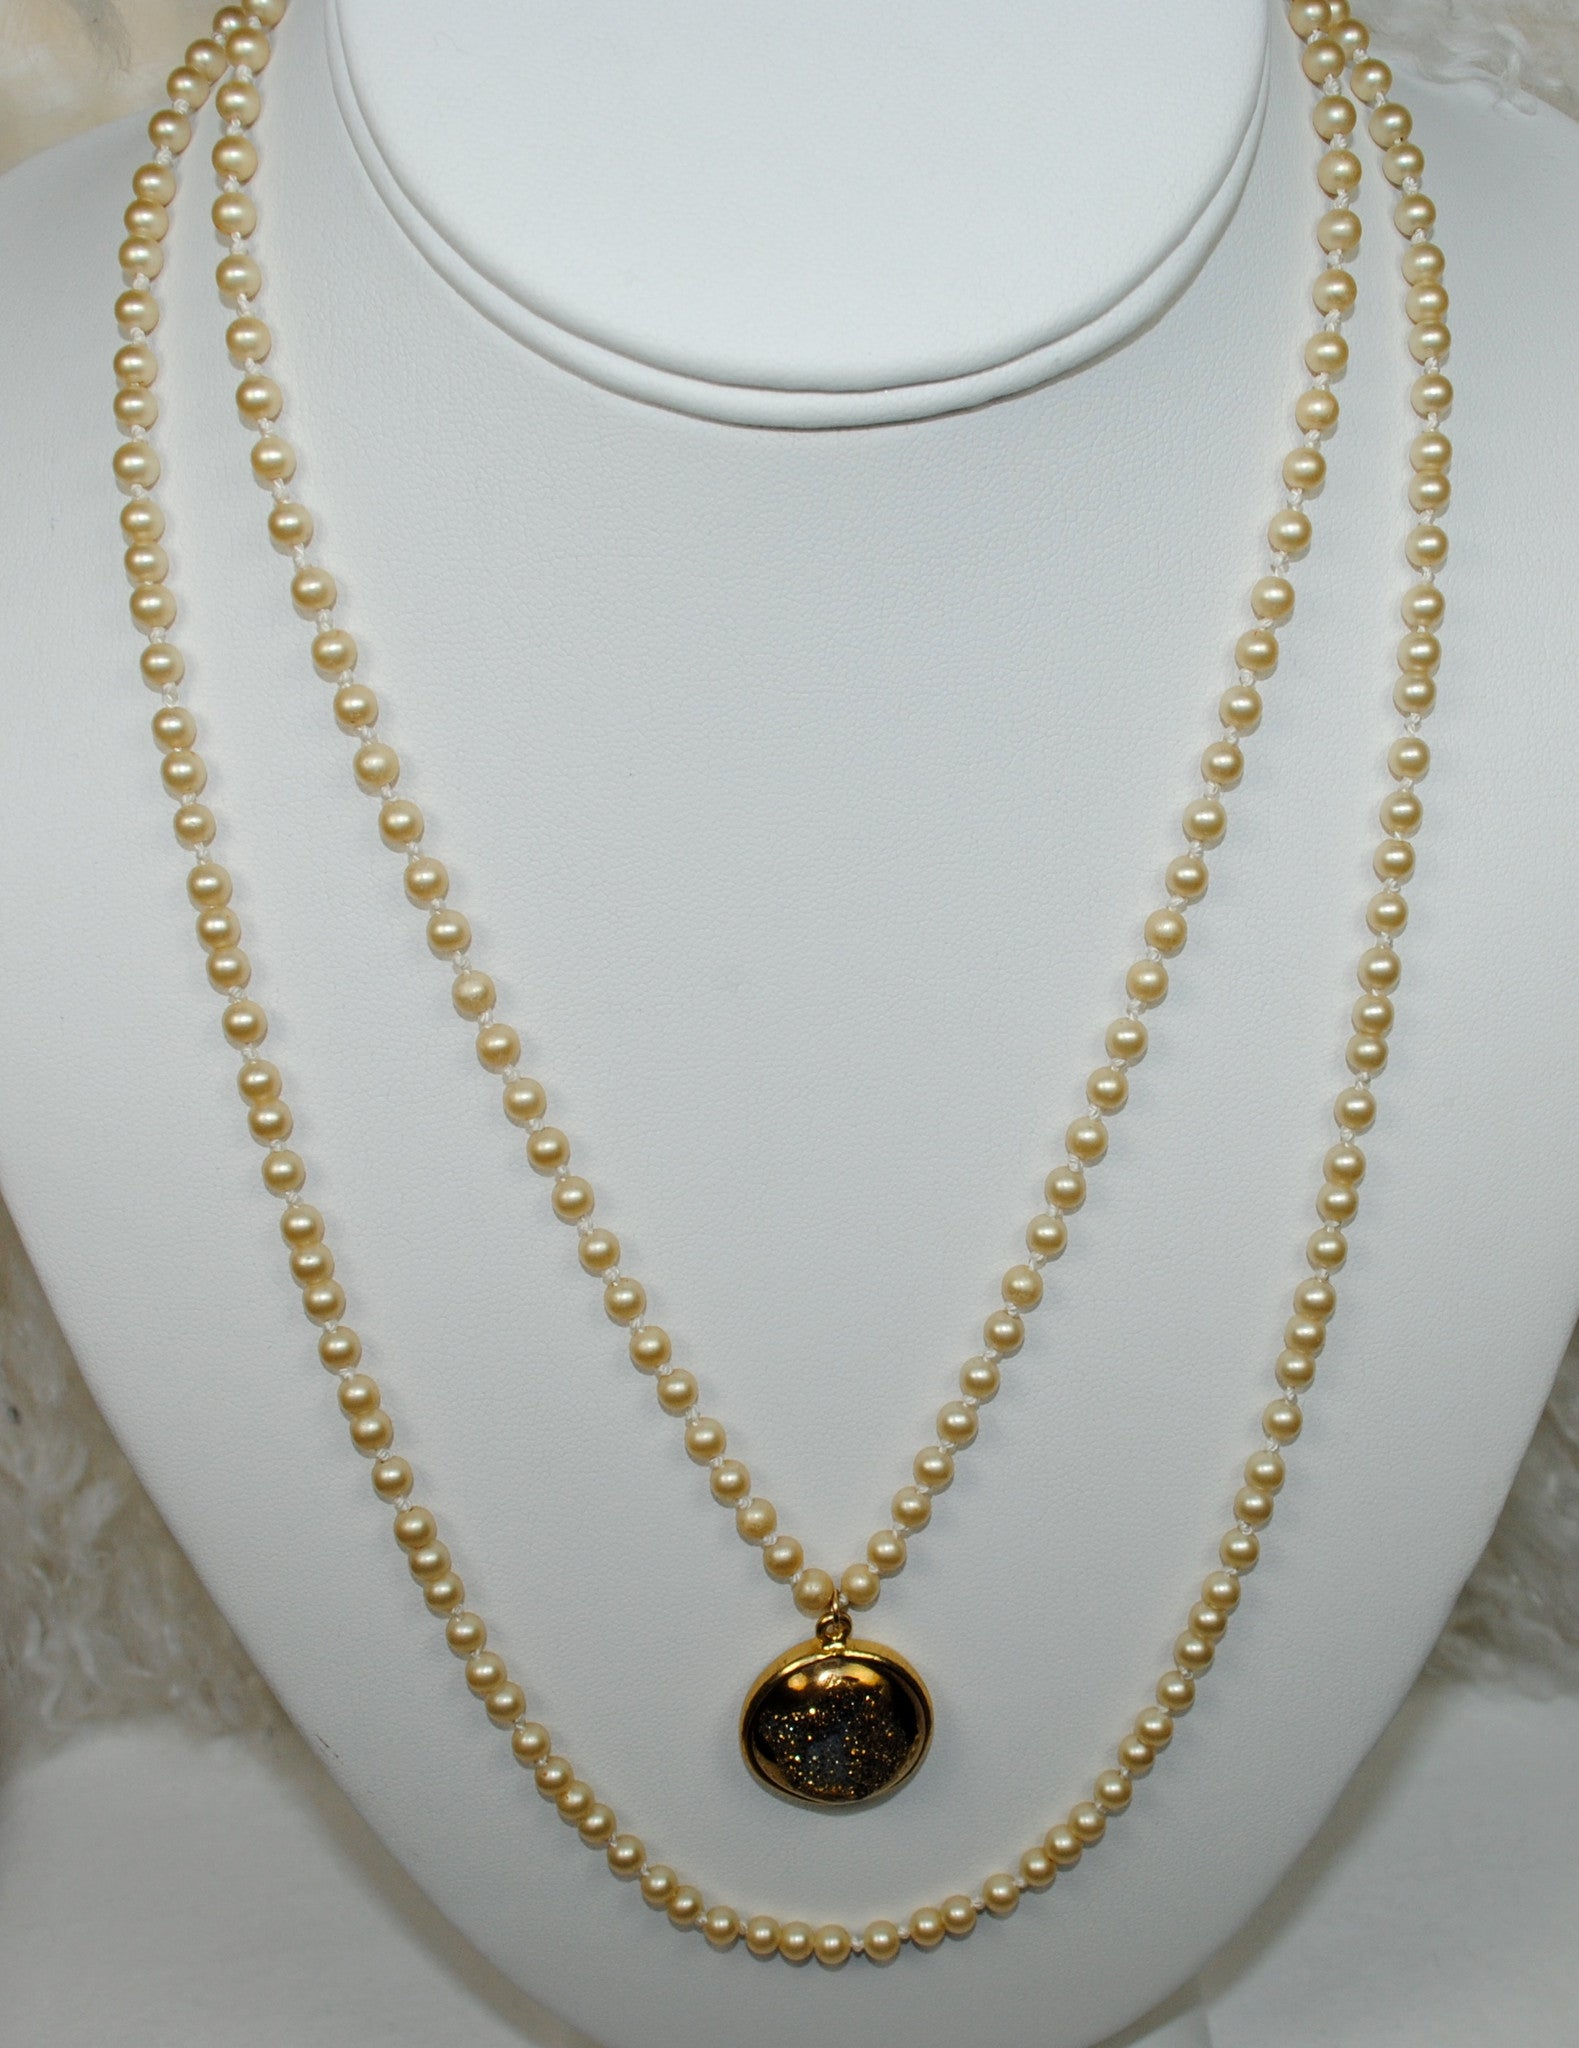 Pearl Necklace w/ Pendant Set